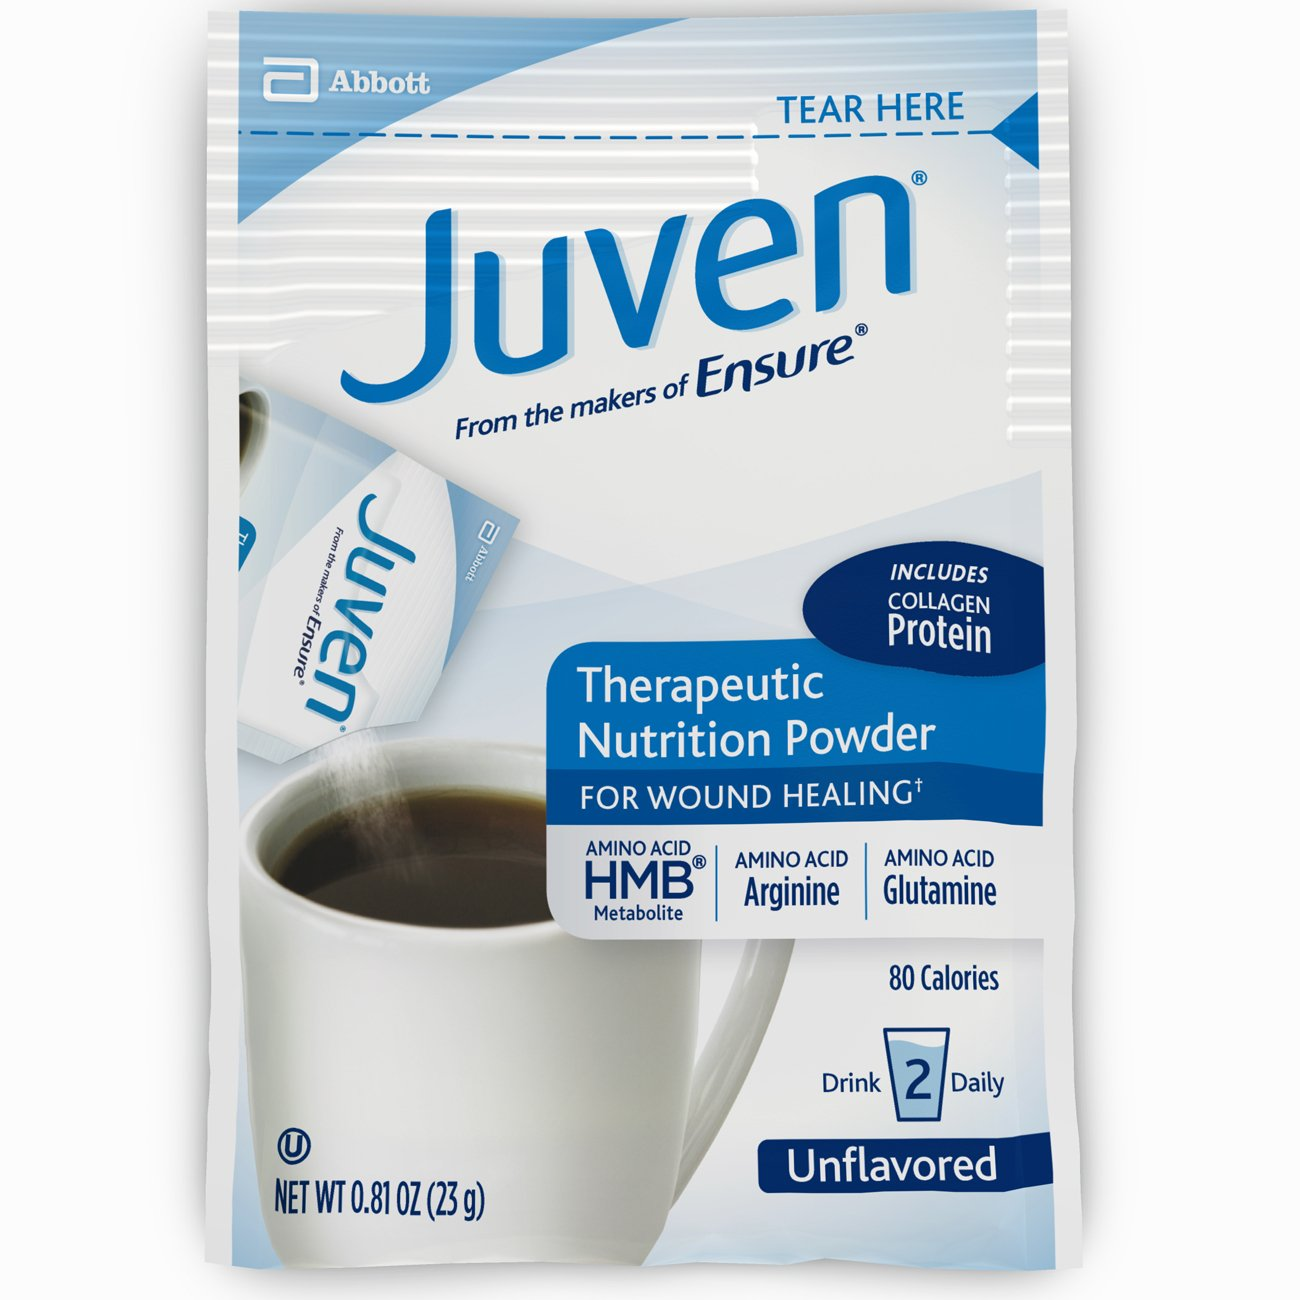 Juven Therapeutic Nutrition Drink Mix Powder for Wound Healing Includes Collagen Protein, Unflavored, 30 Count by Juven (Image #11)